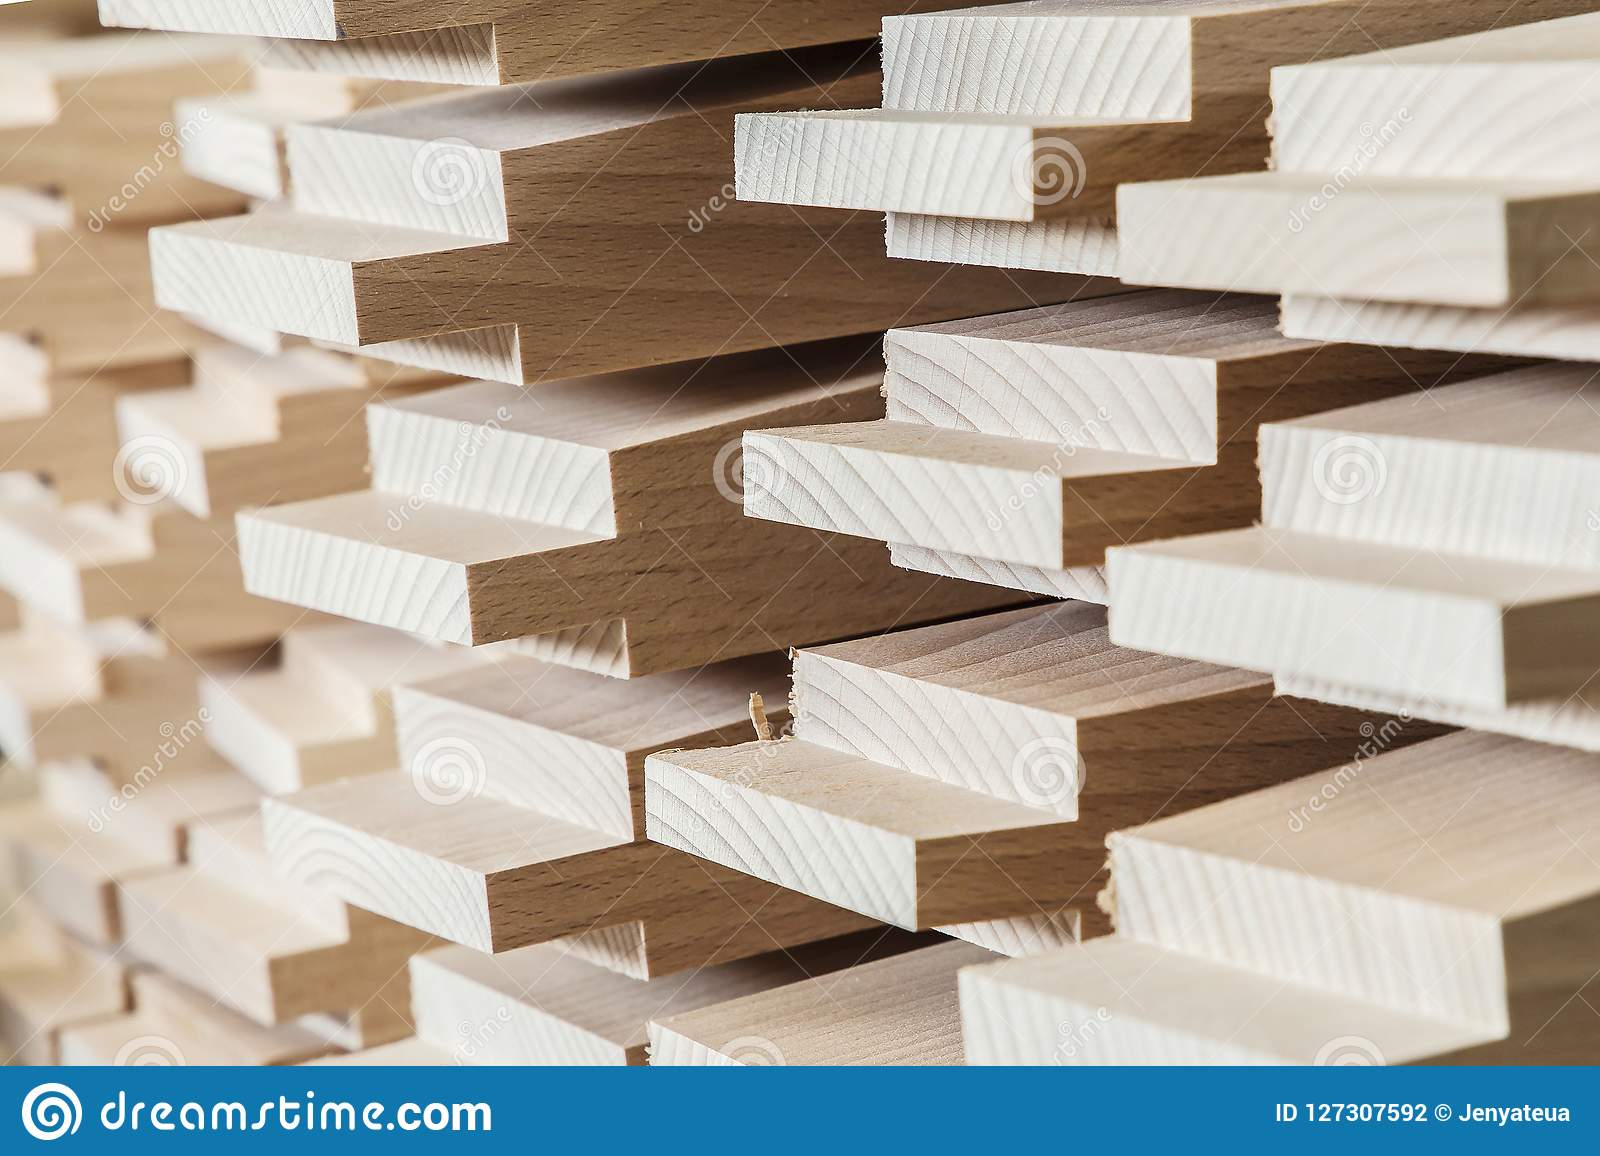 Produce industry wooden products and wood materials